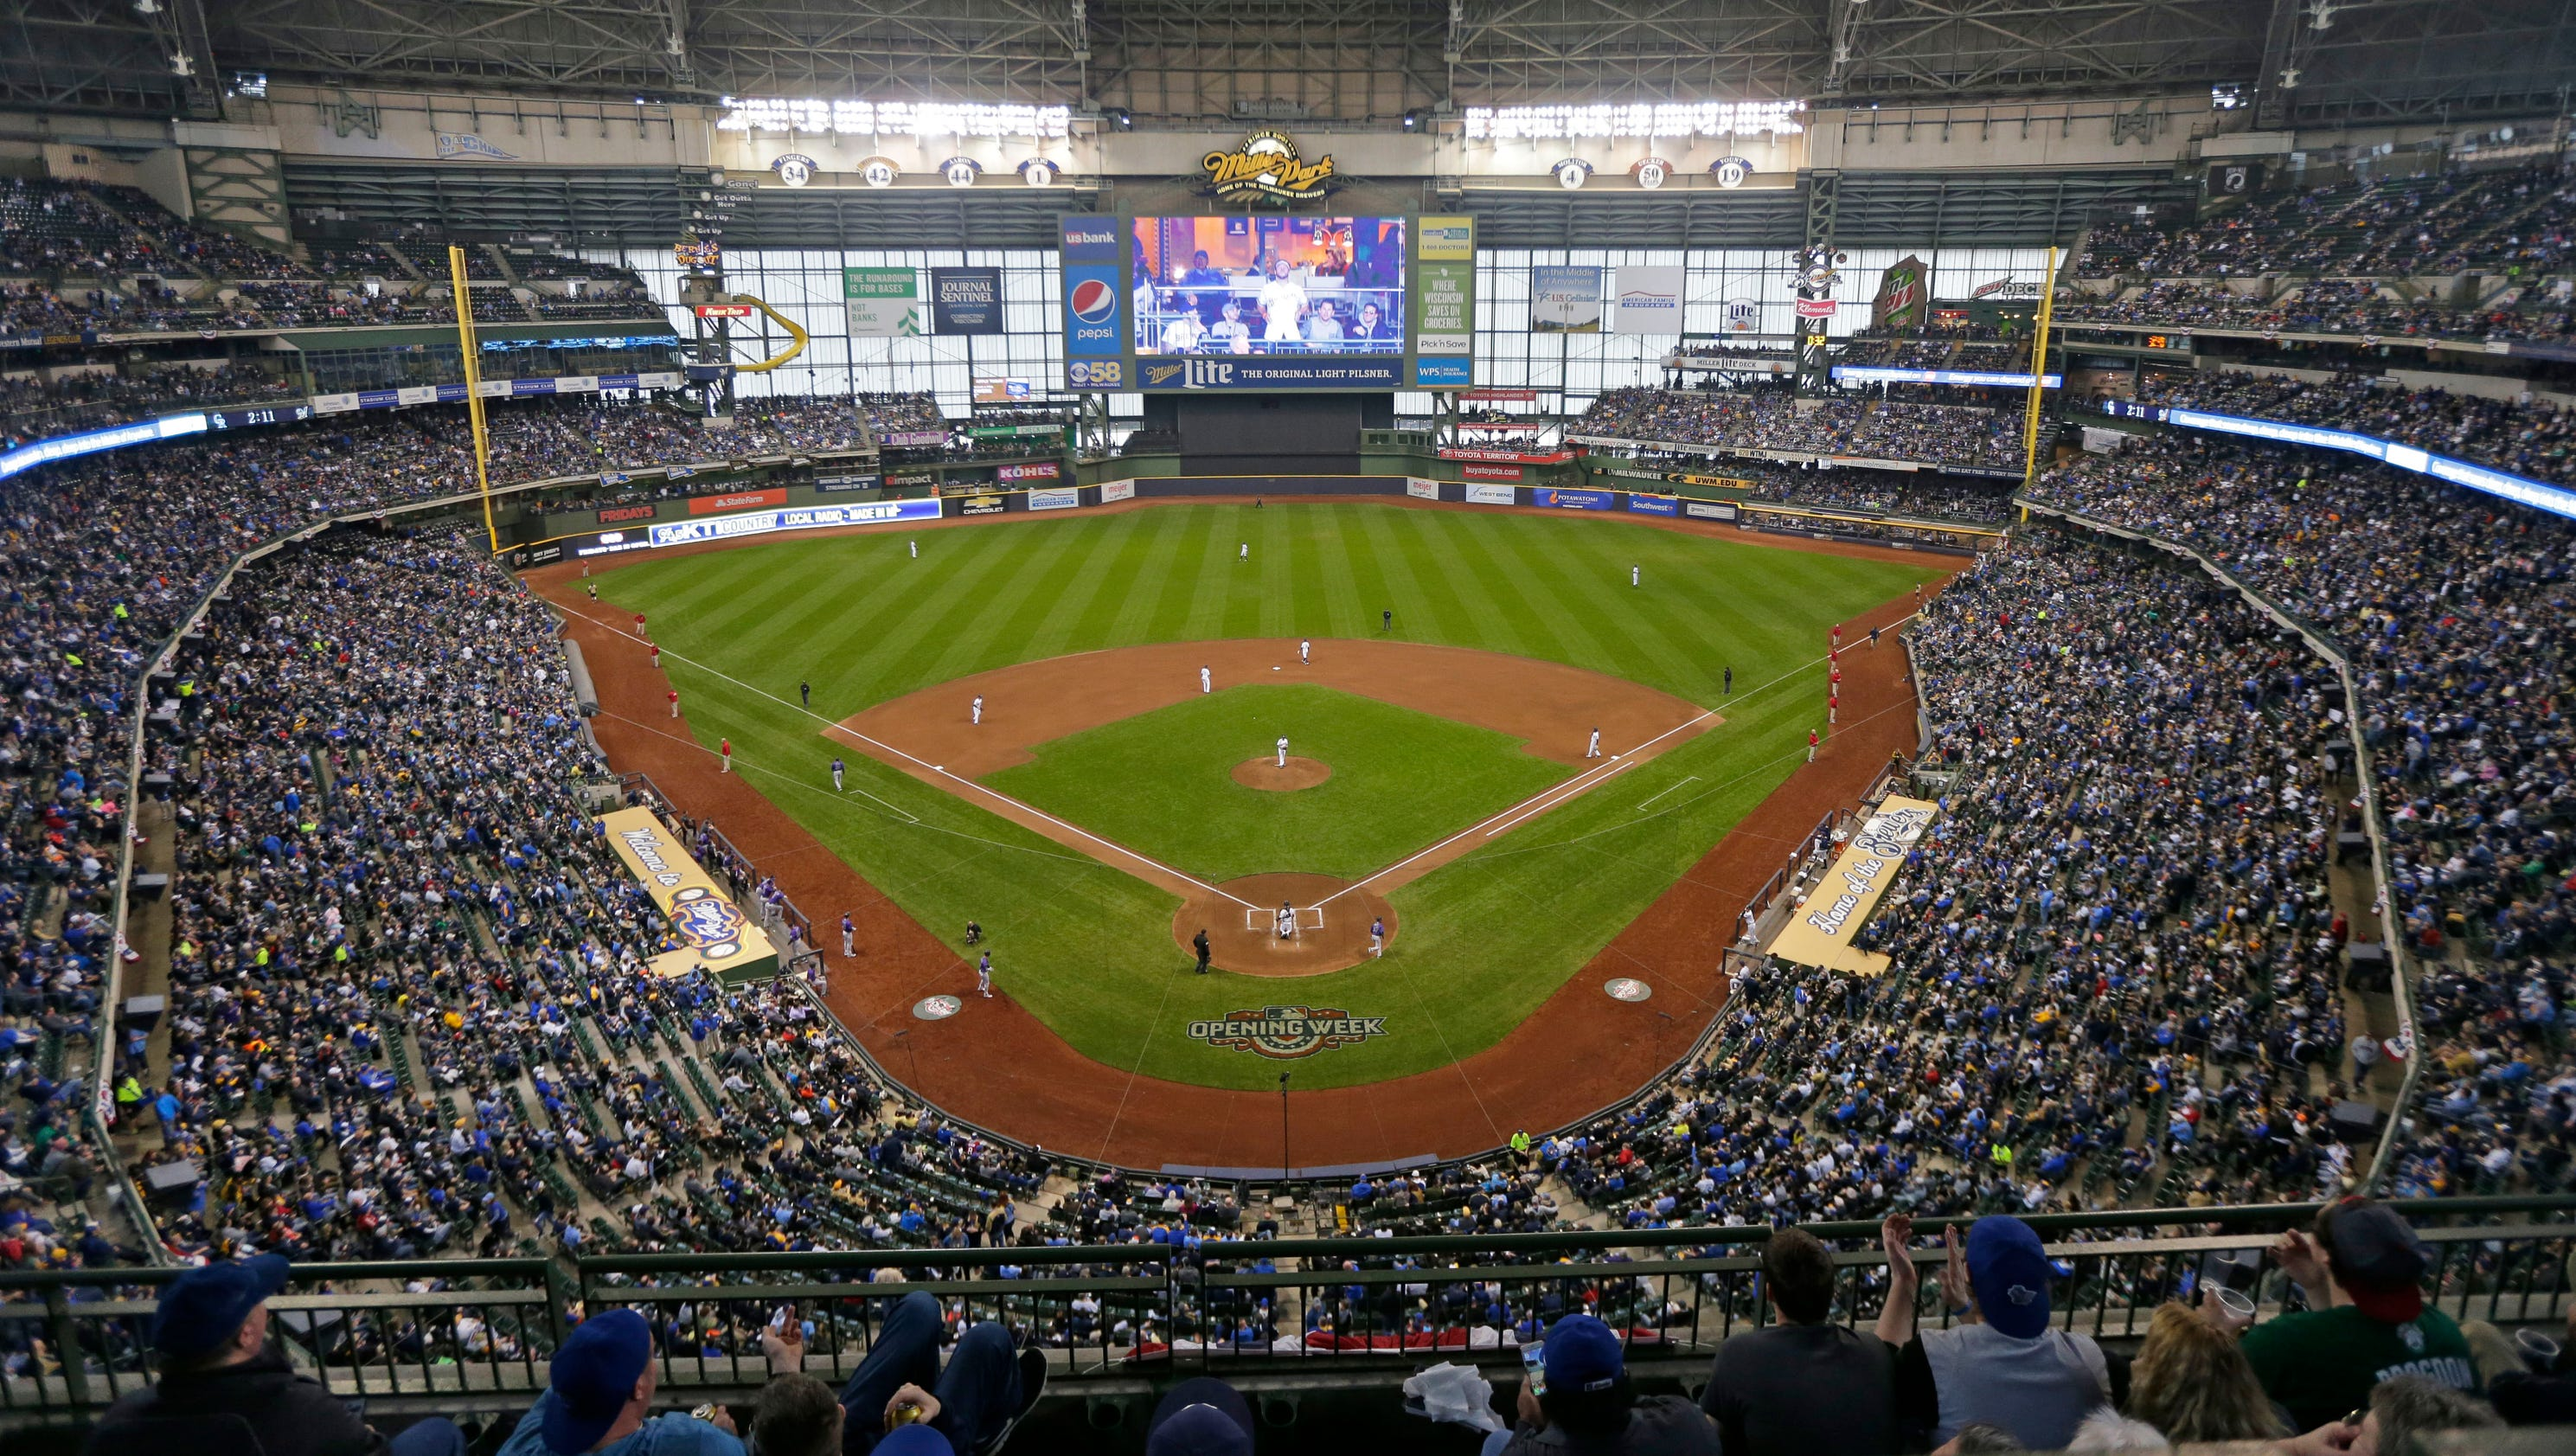 Photos: Opening day at Miller Park